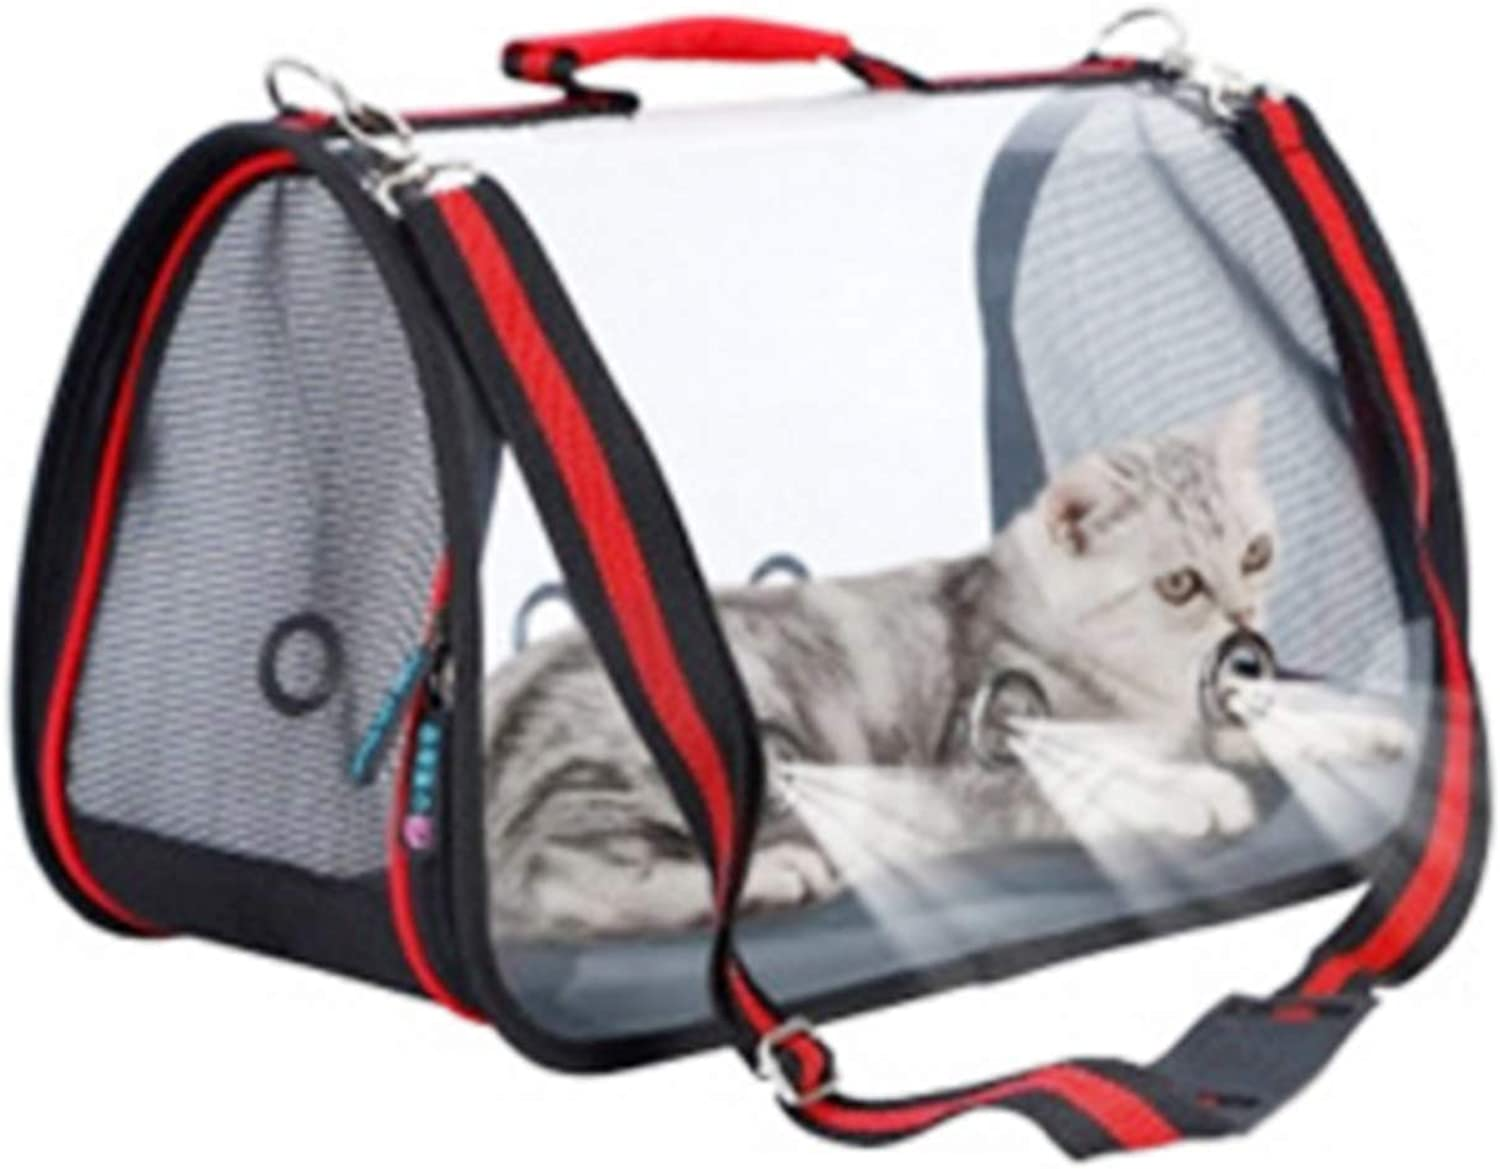 Pet Travel Carrier Waterproof Pet Carrier for Cat Dog Lightweight Airline Approved Soft Sided Shoulder Travel Bags,Red,L Ourtdoor Pet Bag